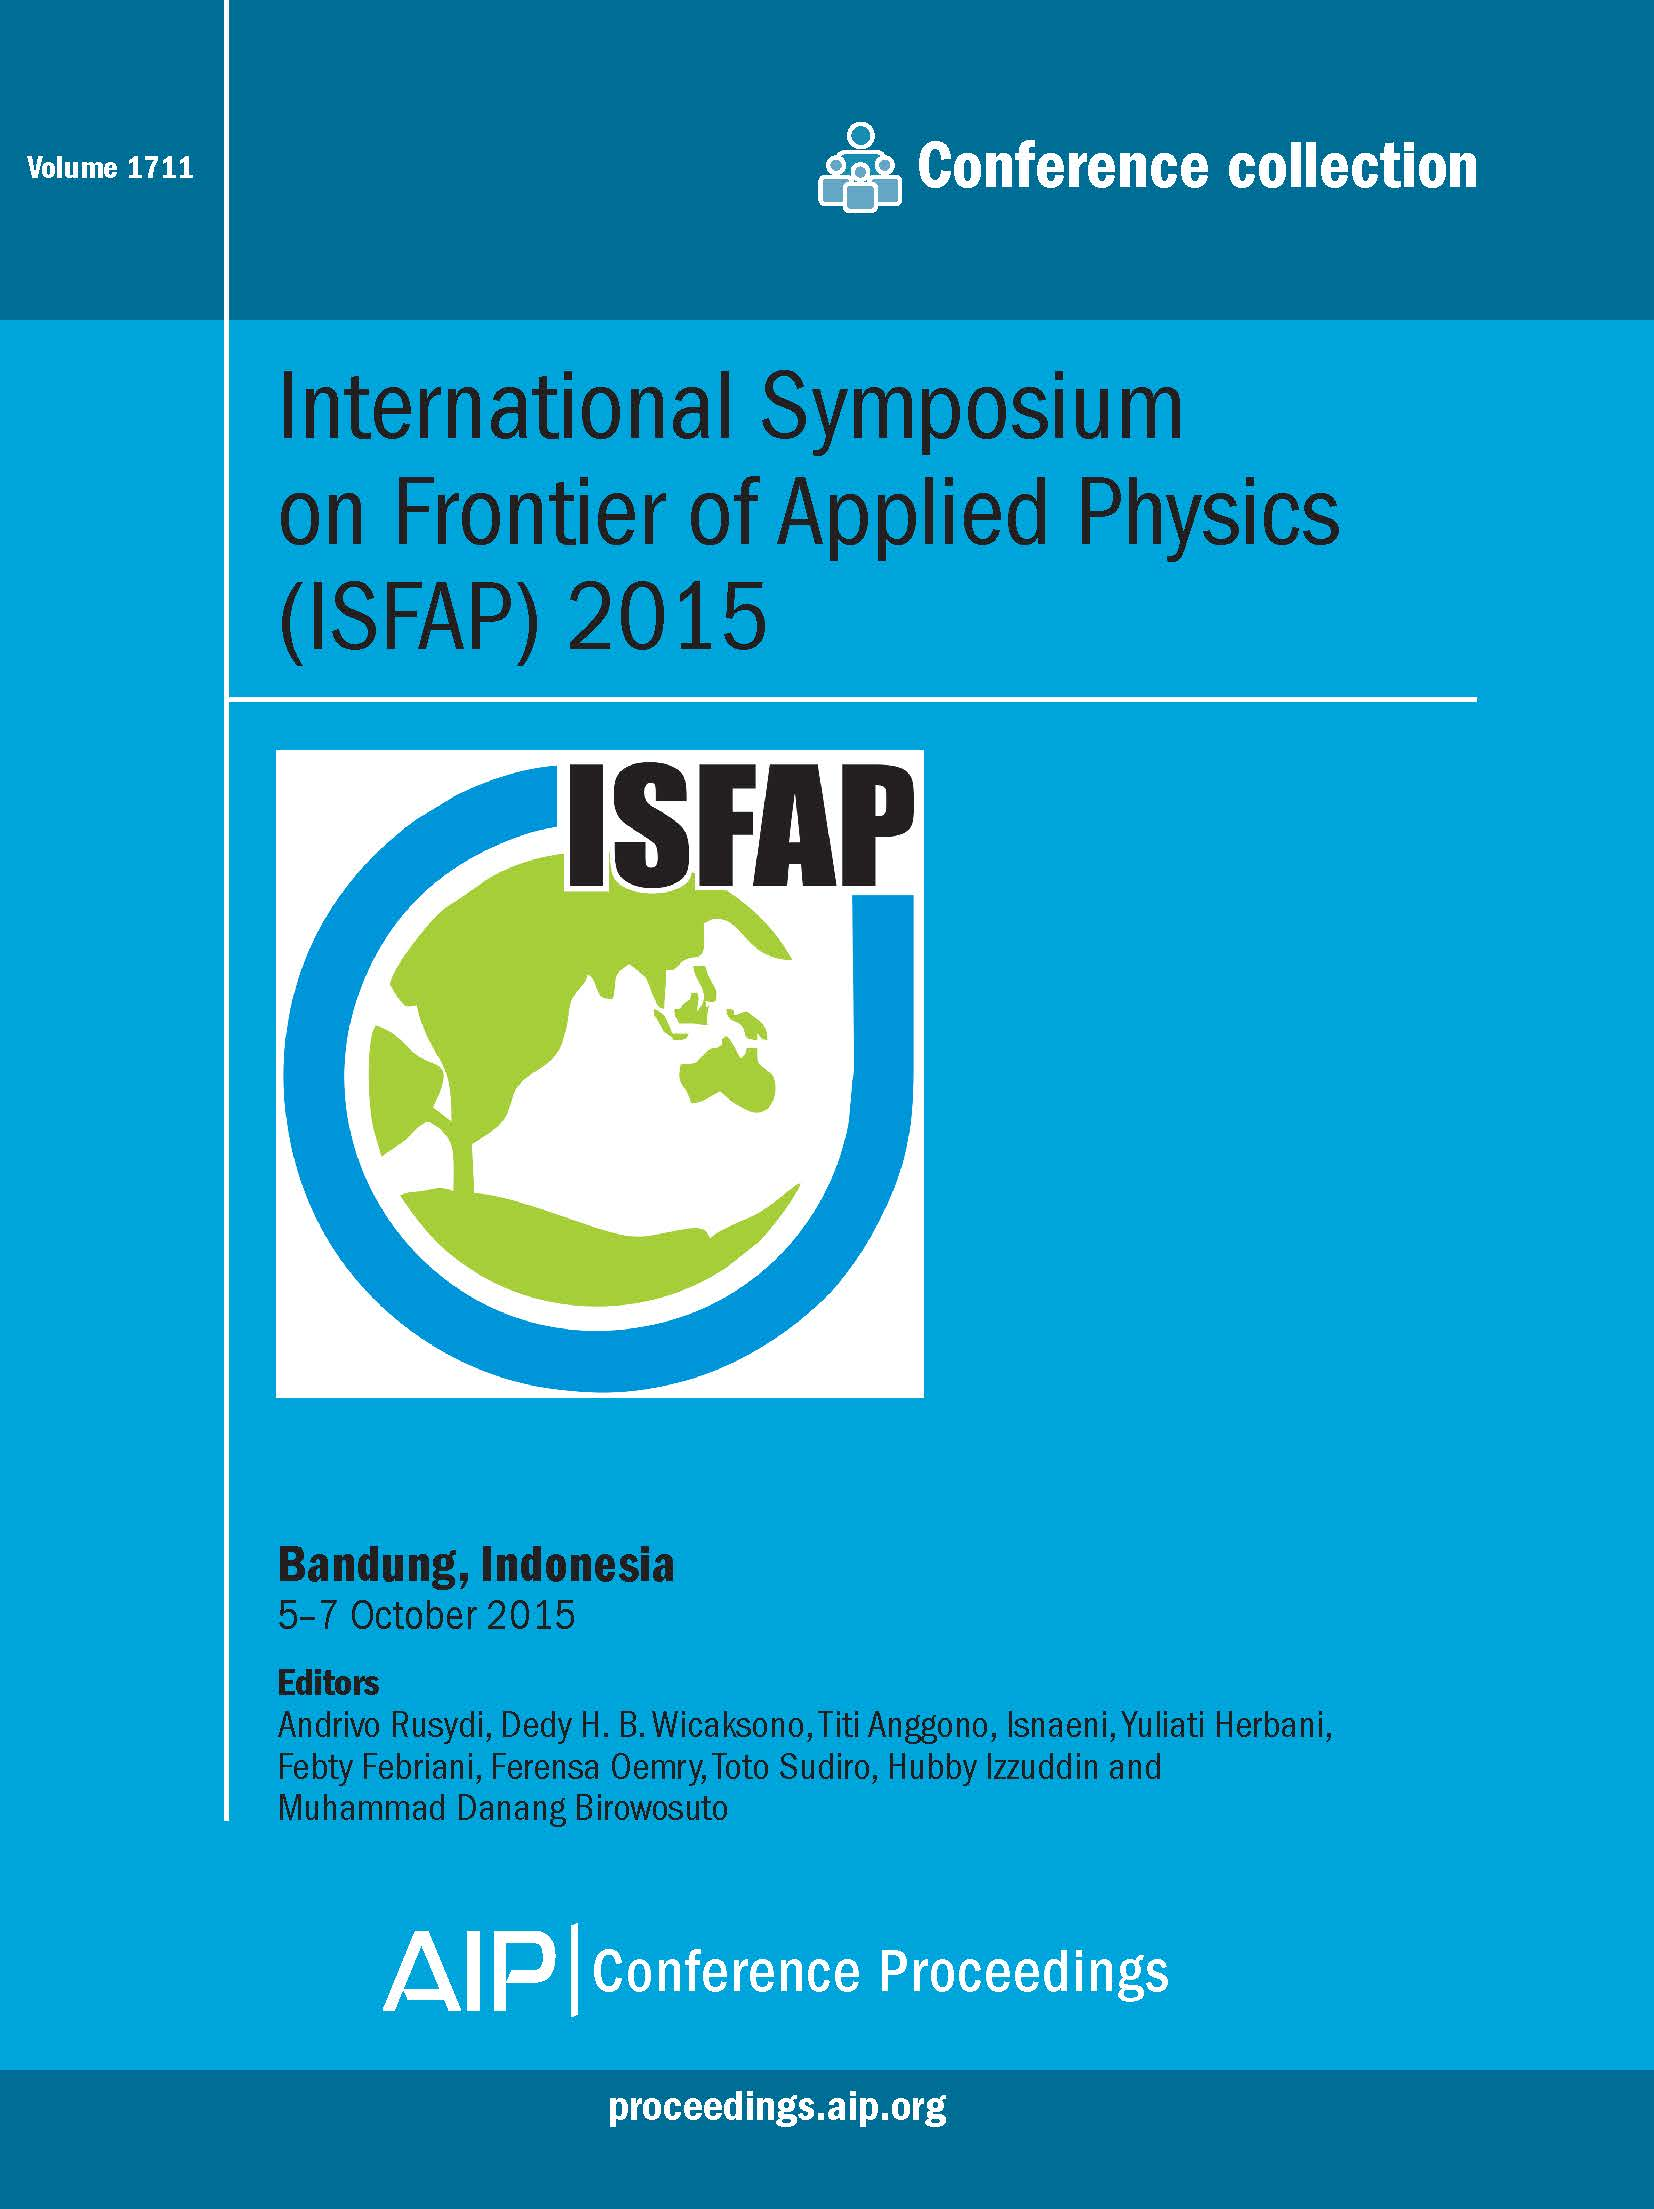 Volume 1711: International Symposium on Frontier of Applied Physics